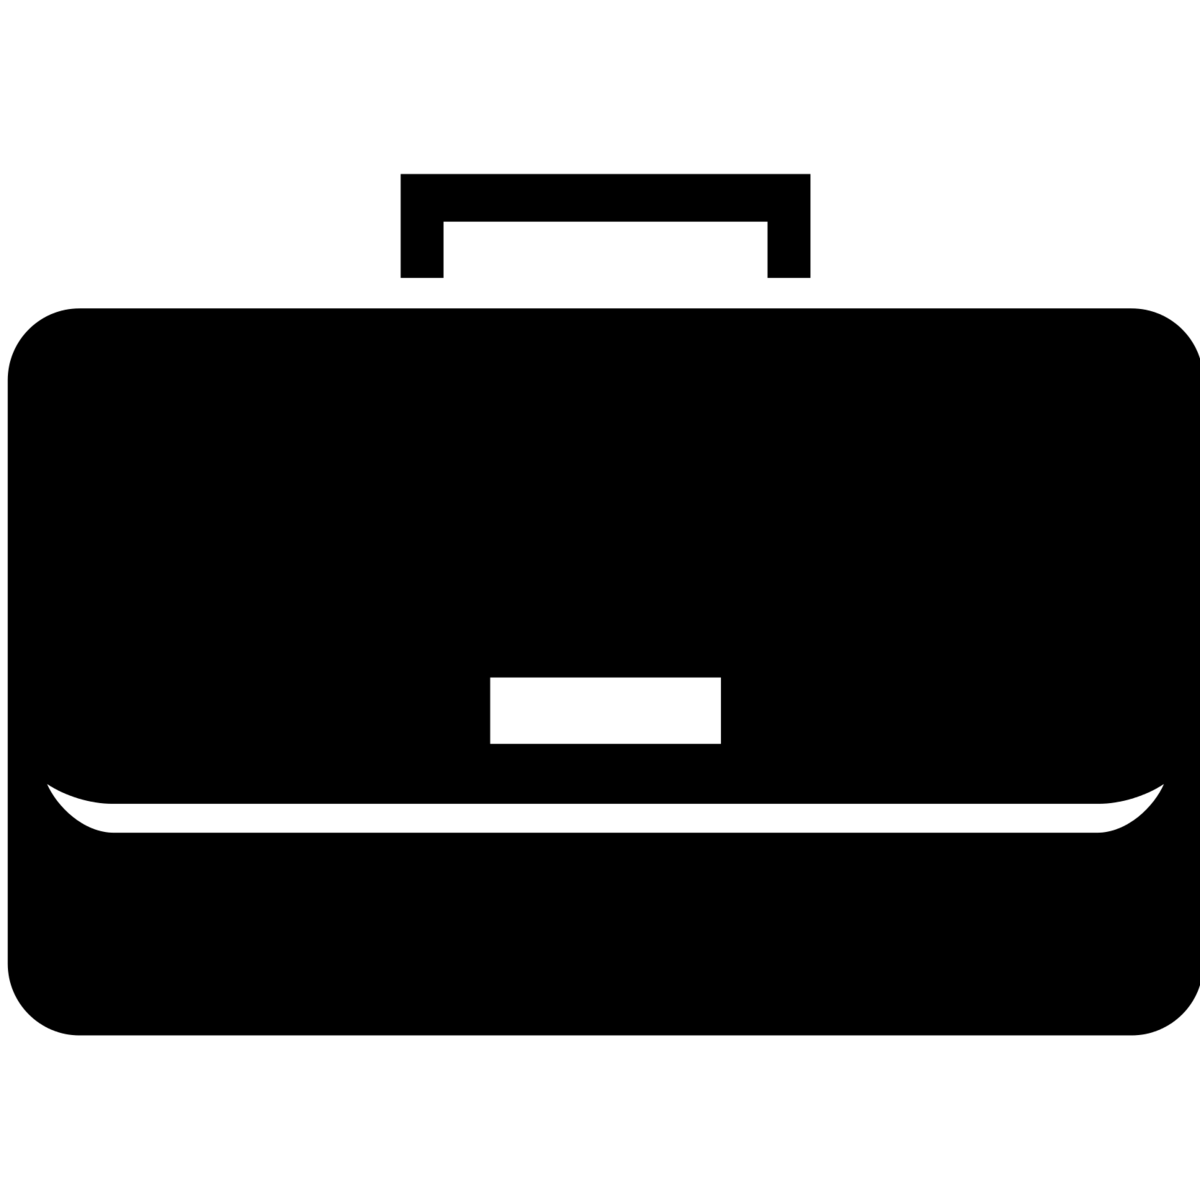 clip royalty free stock Free business briefcase cliparts. Bags clipart library bag.